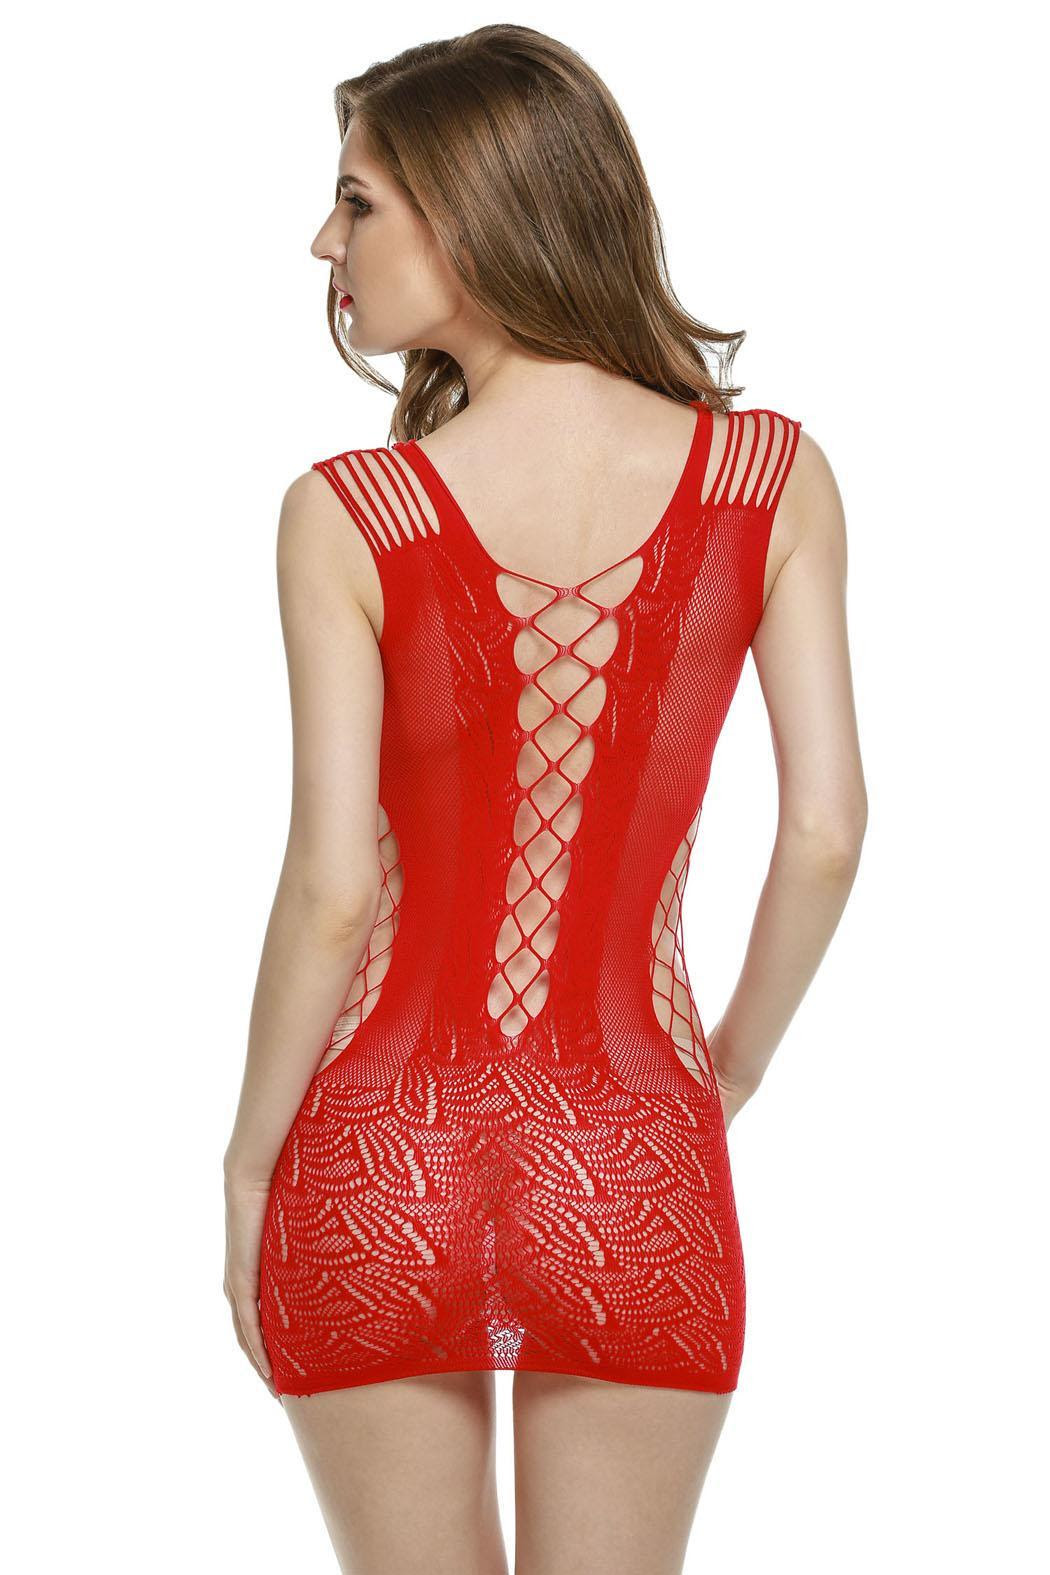 Underwear what bodycon the best a dress for is